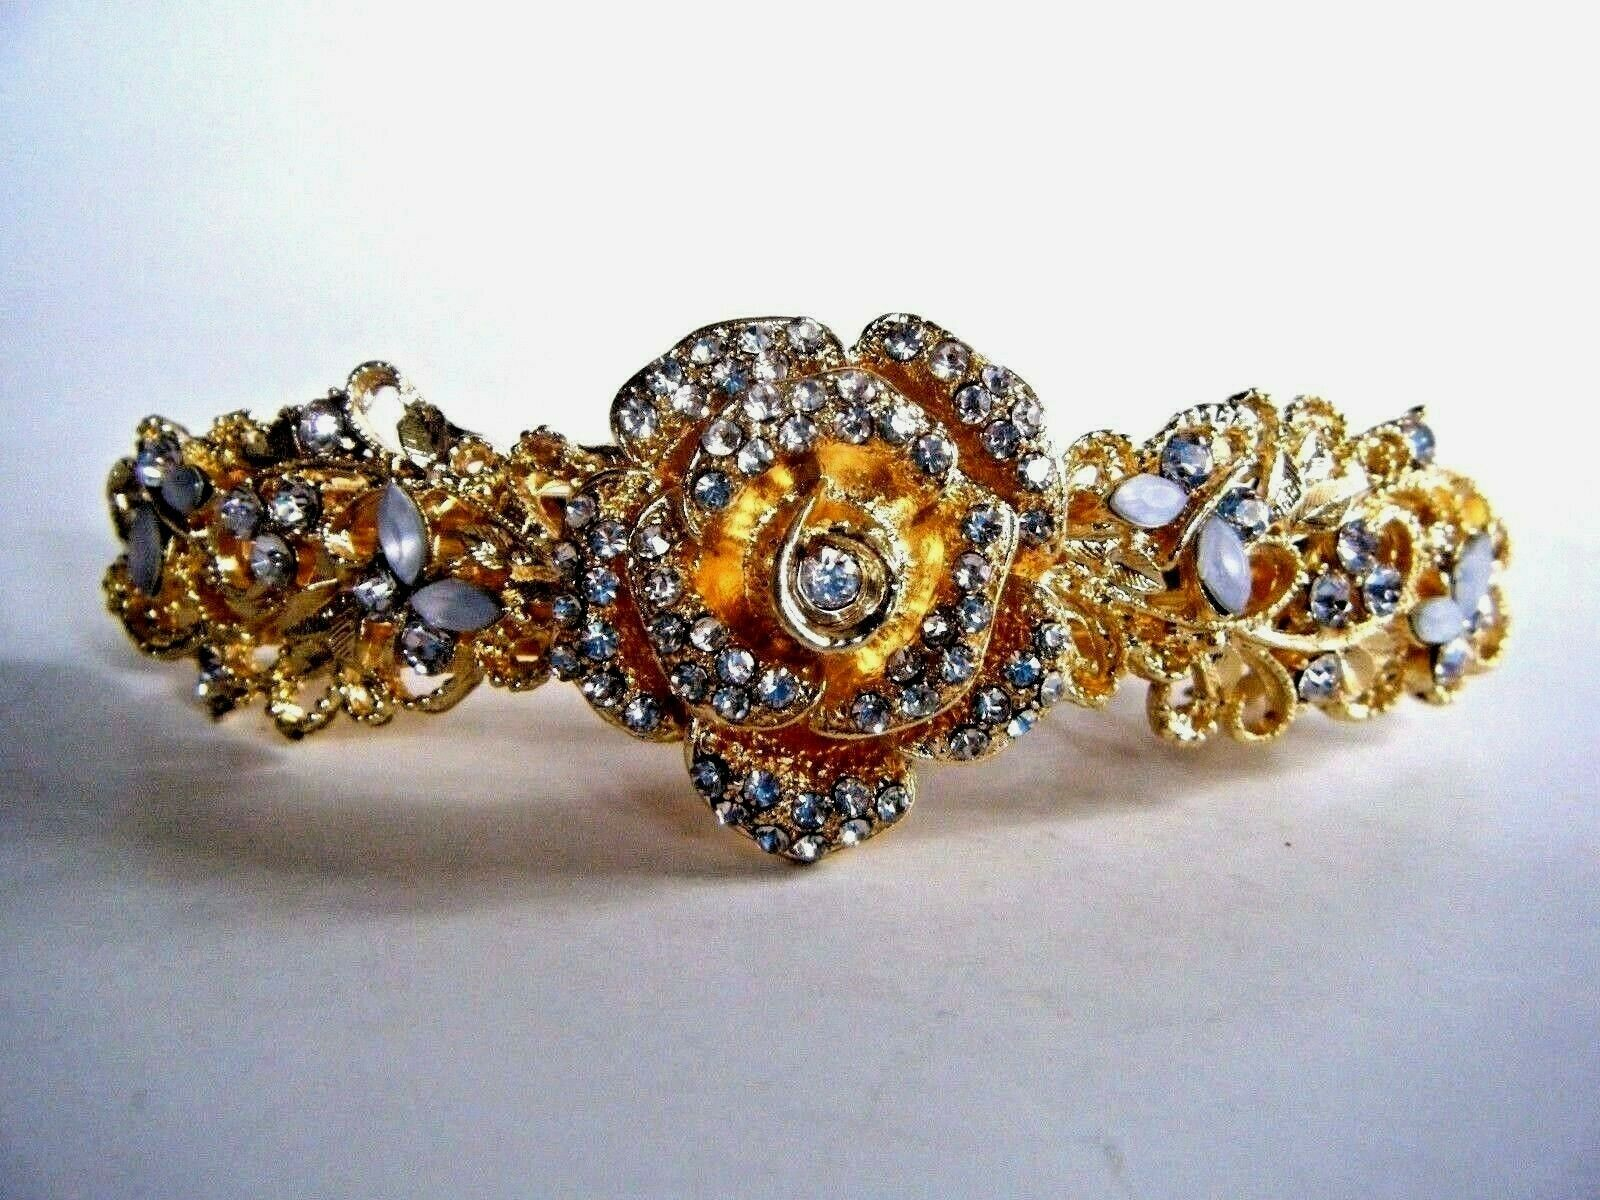 Primary image for Gold Tone Metal Hair Clip Barrette Rose Design With Clear Stones New